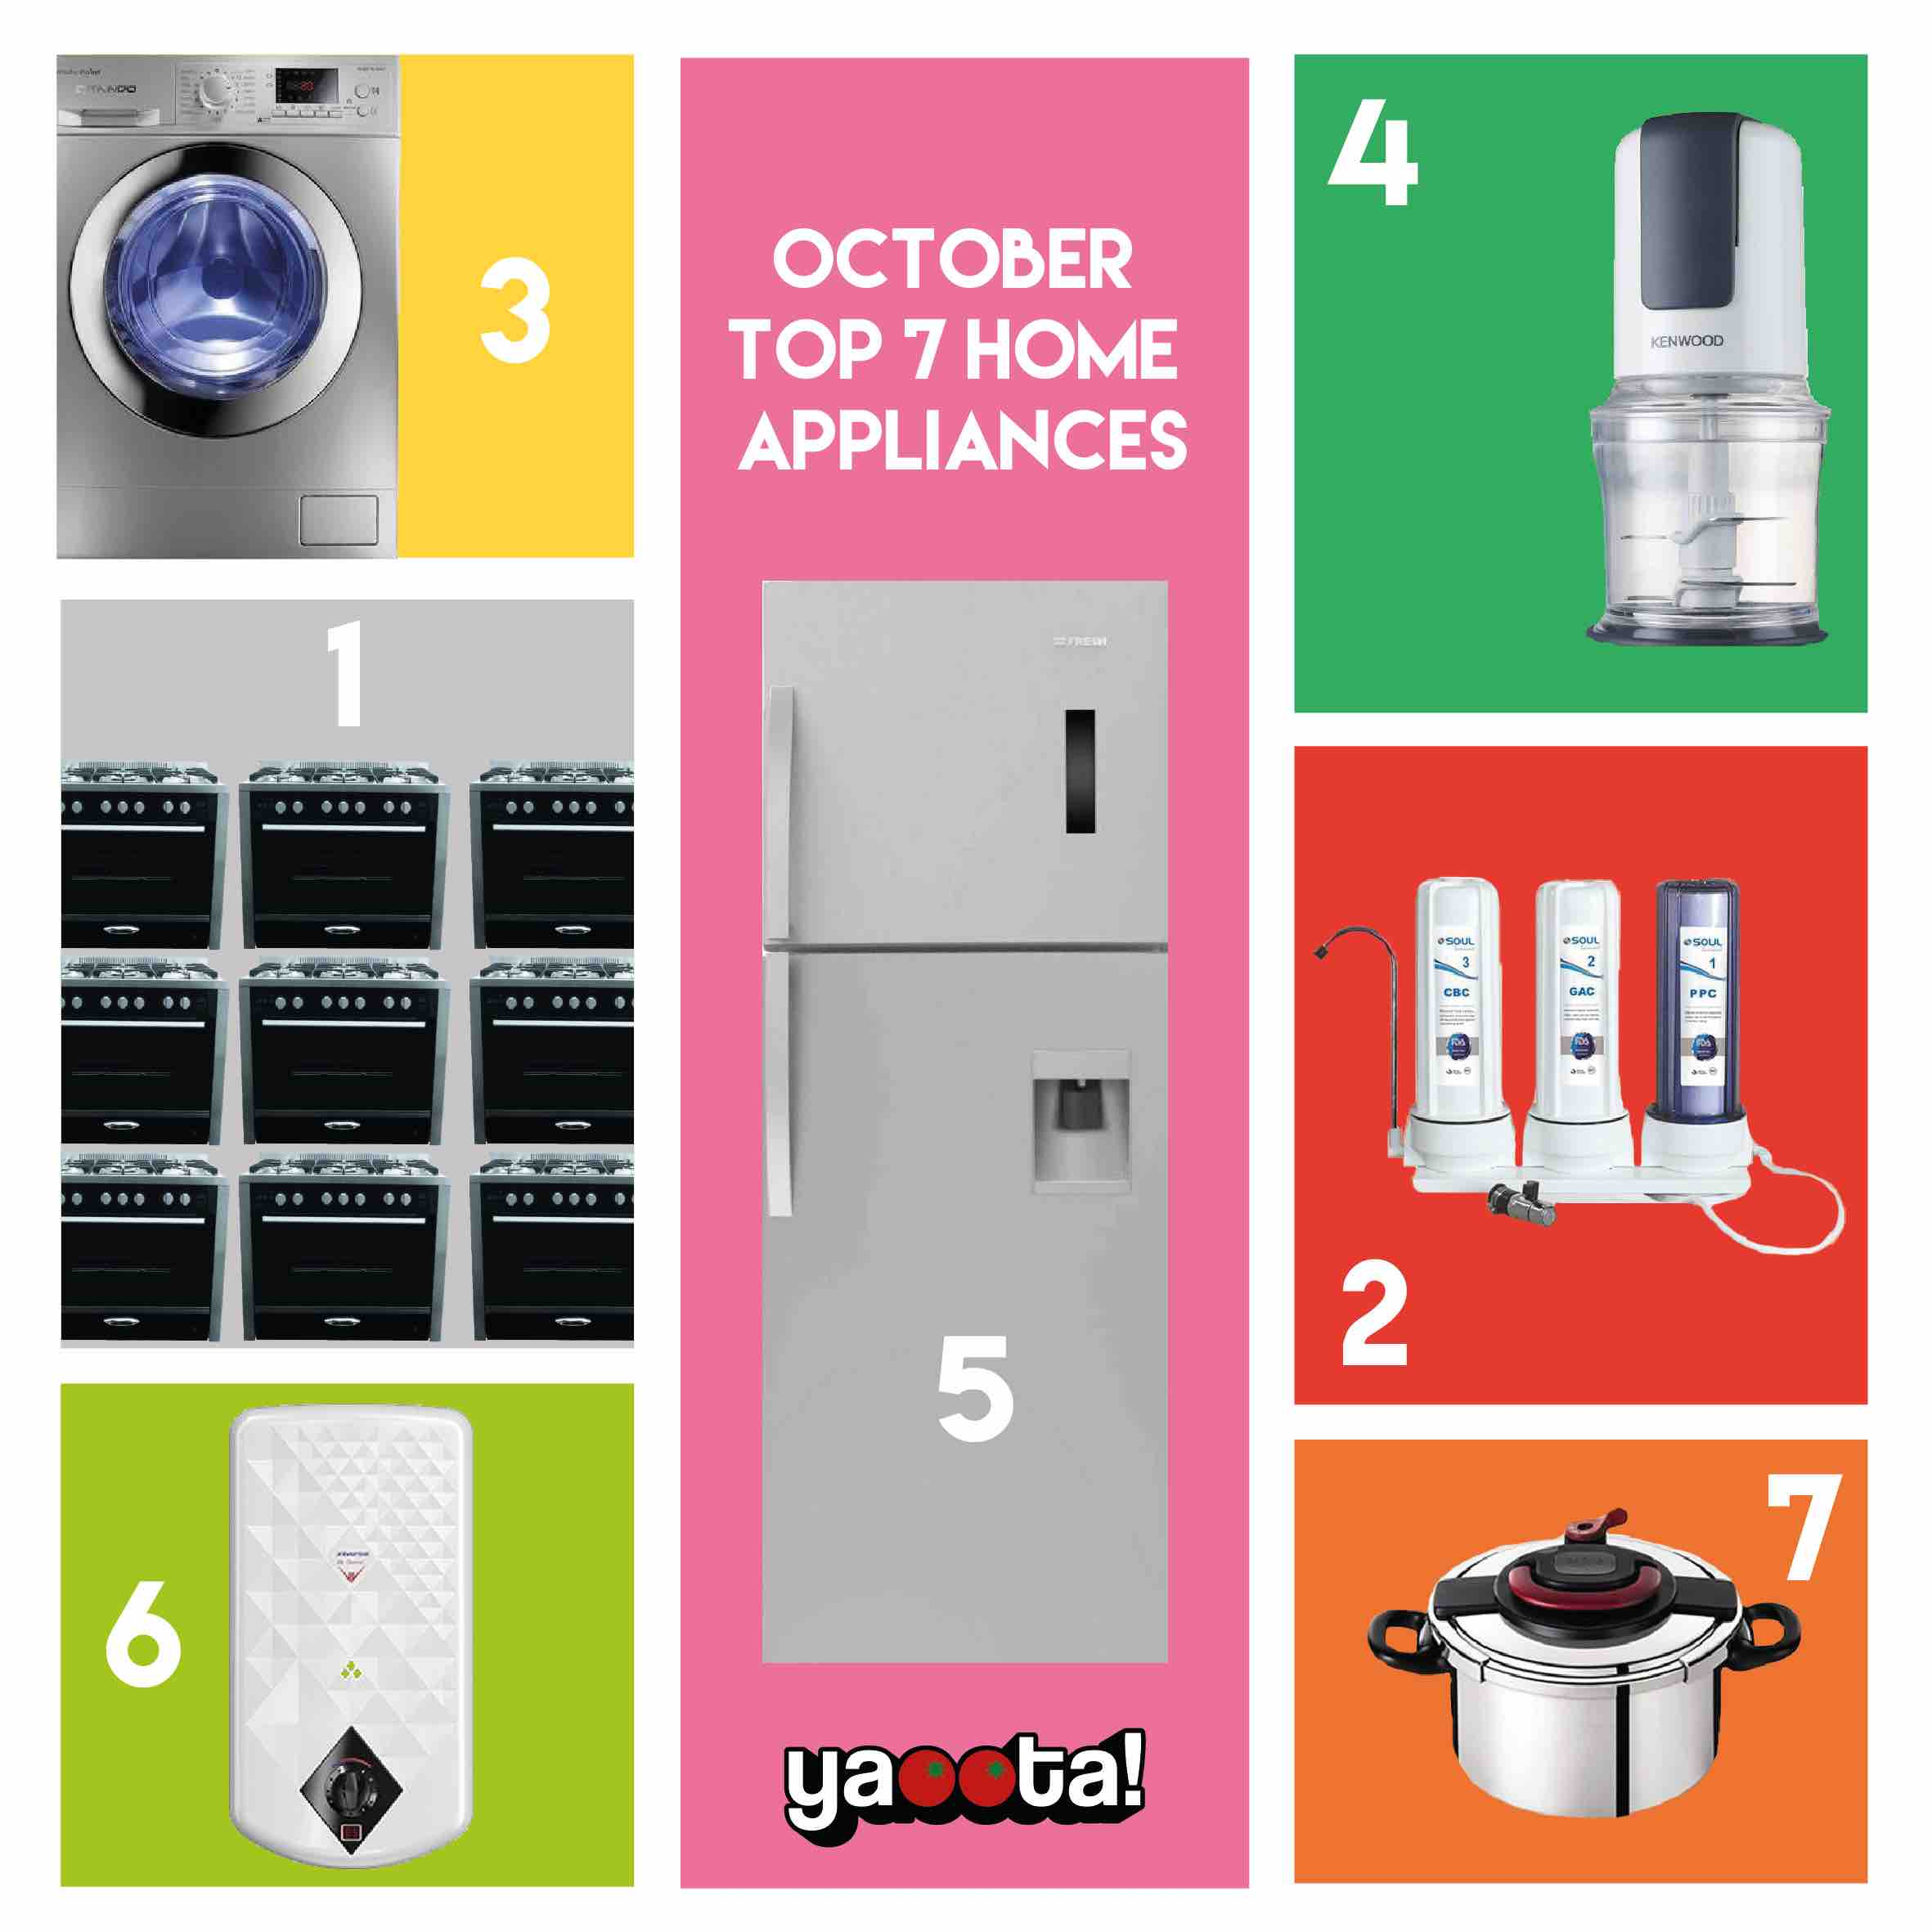 Most 7 Popular Home Appliances in October 2017